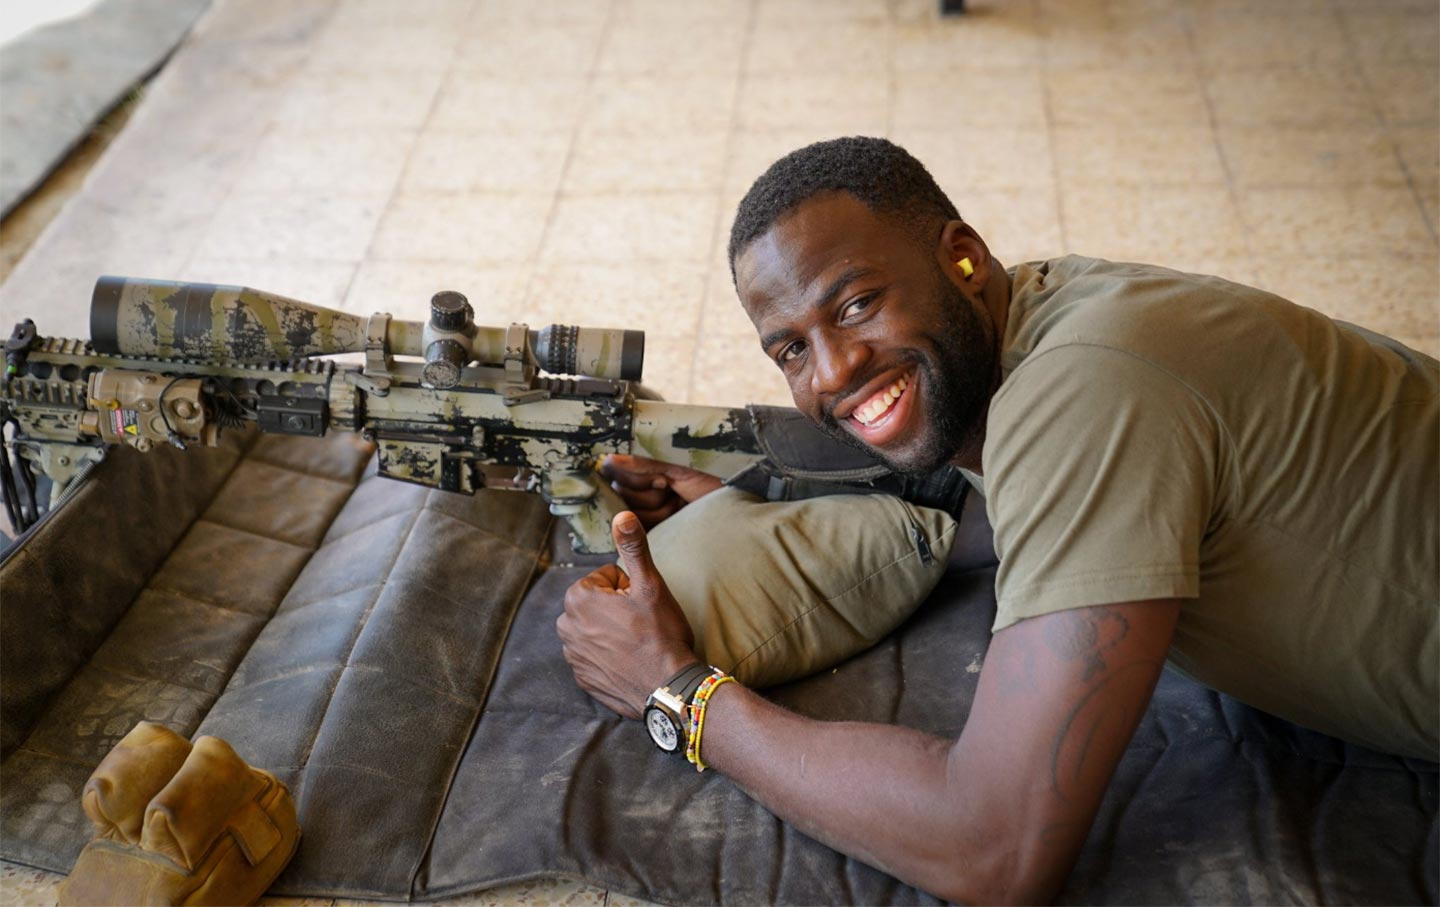 On Draymond Green's 'Friends of the IDF' Sponsored Trip to Israel